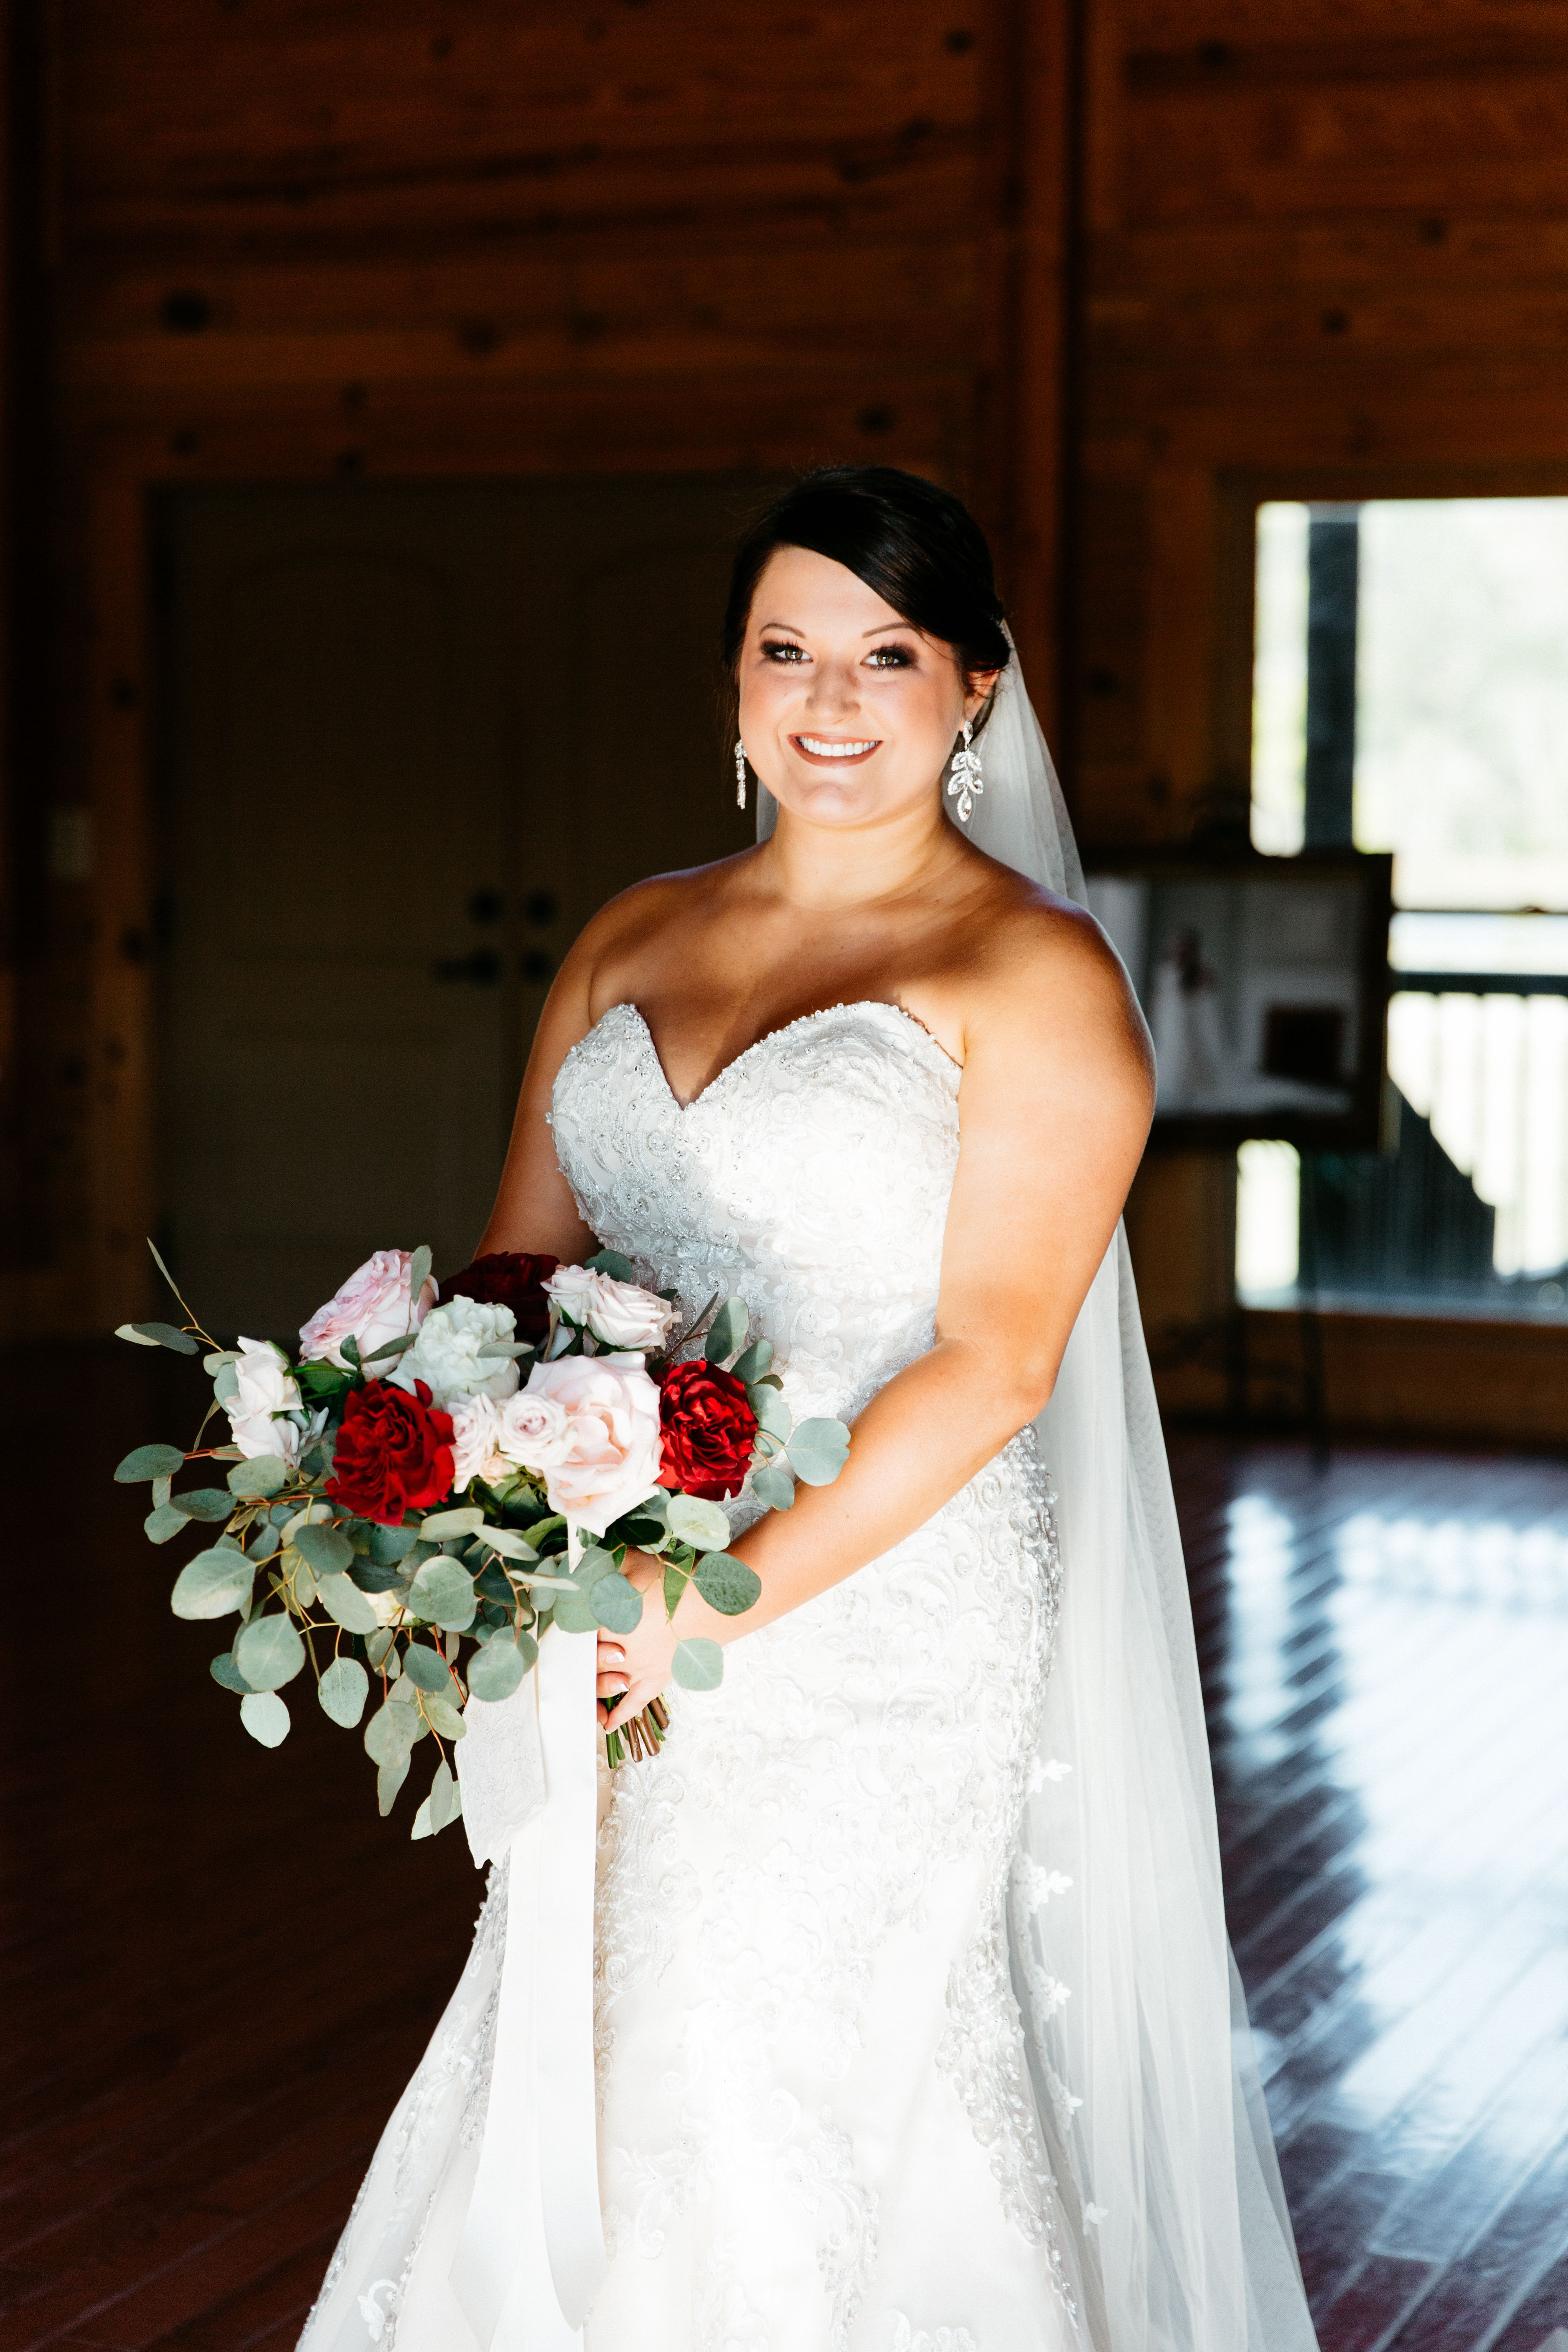 Forrest Pond Lodge Lakeside Weekend Wedding Venue in ...